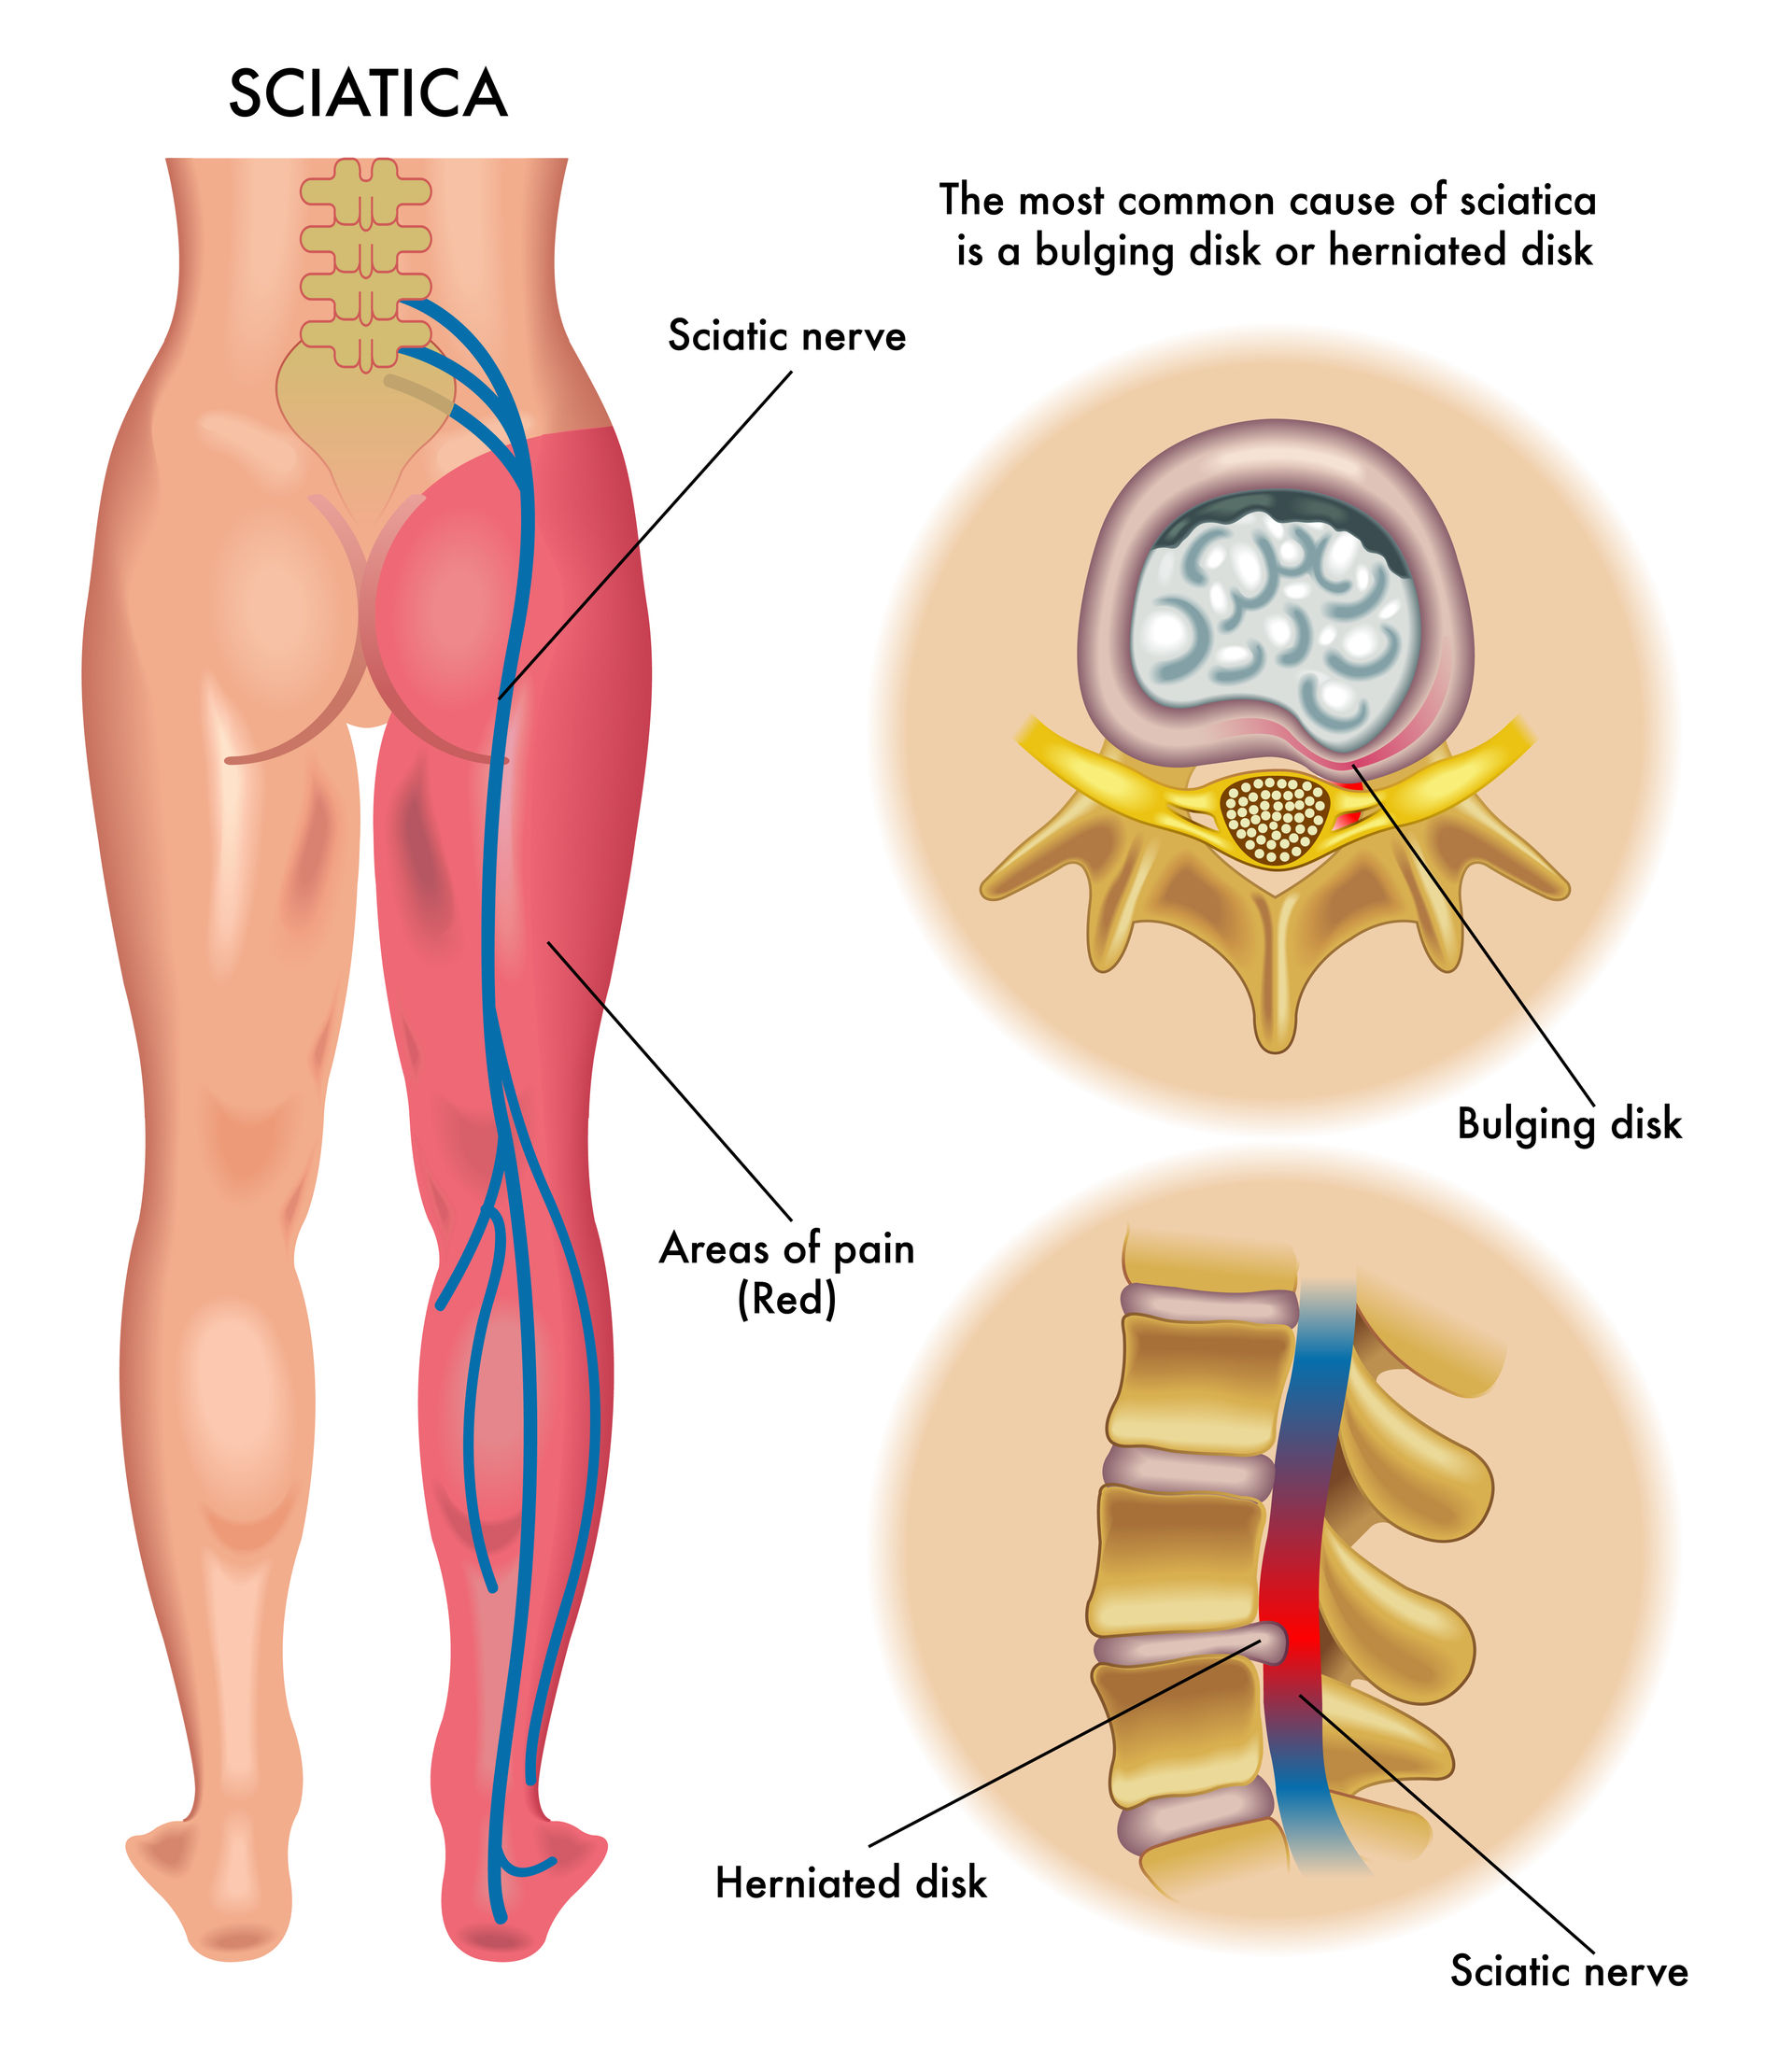 sciatica: causes and treatment - eng eme physio, Skeleton